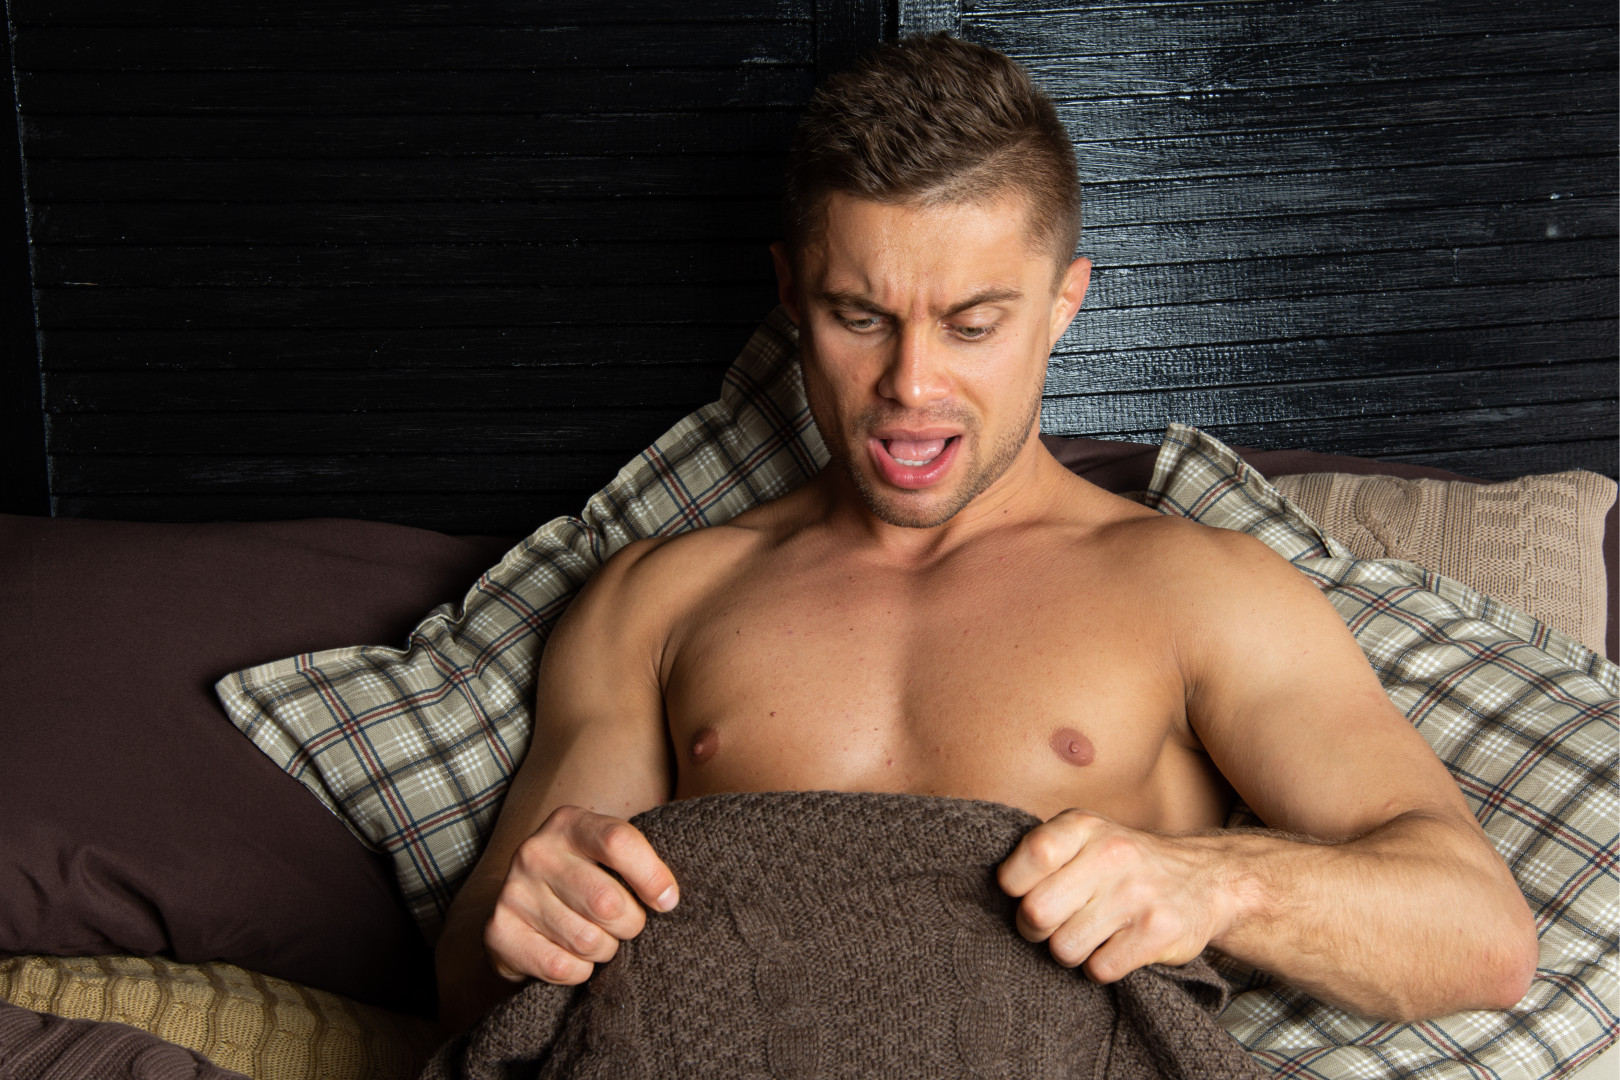 man looking down at his penis in bed